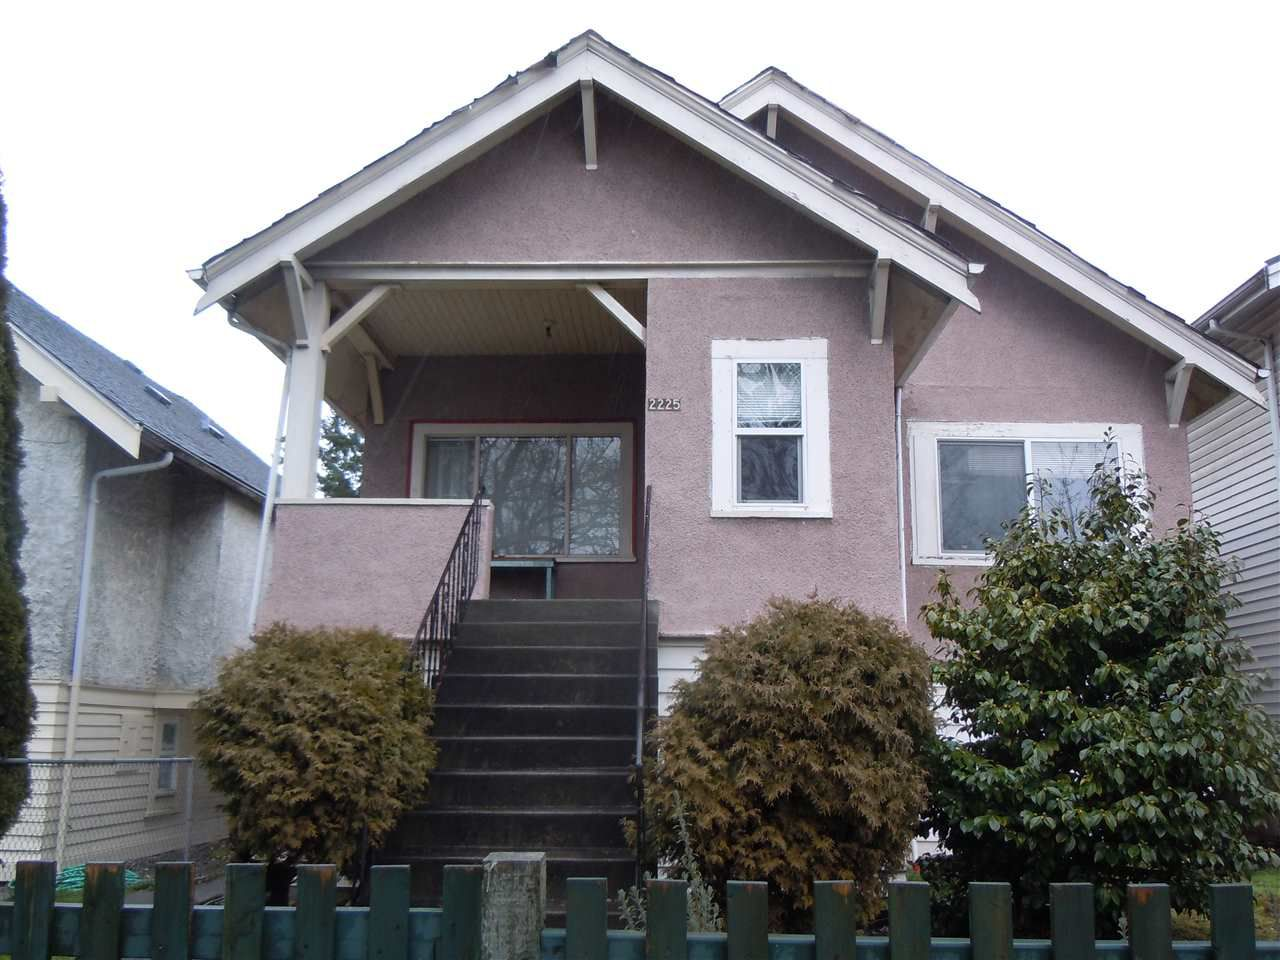 Main Photo: 2225 E BROADWAY in Vancouver: Grandview VE House for sale (Vancouver East)  : MLS®# R2132723